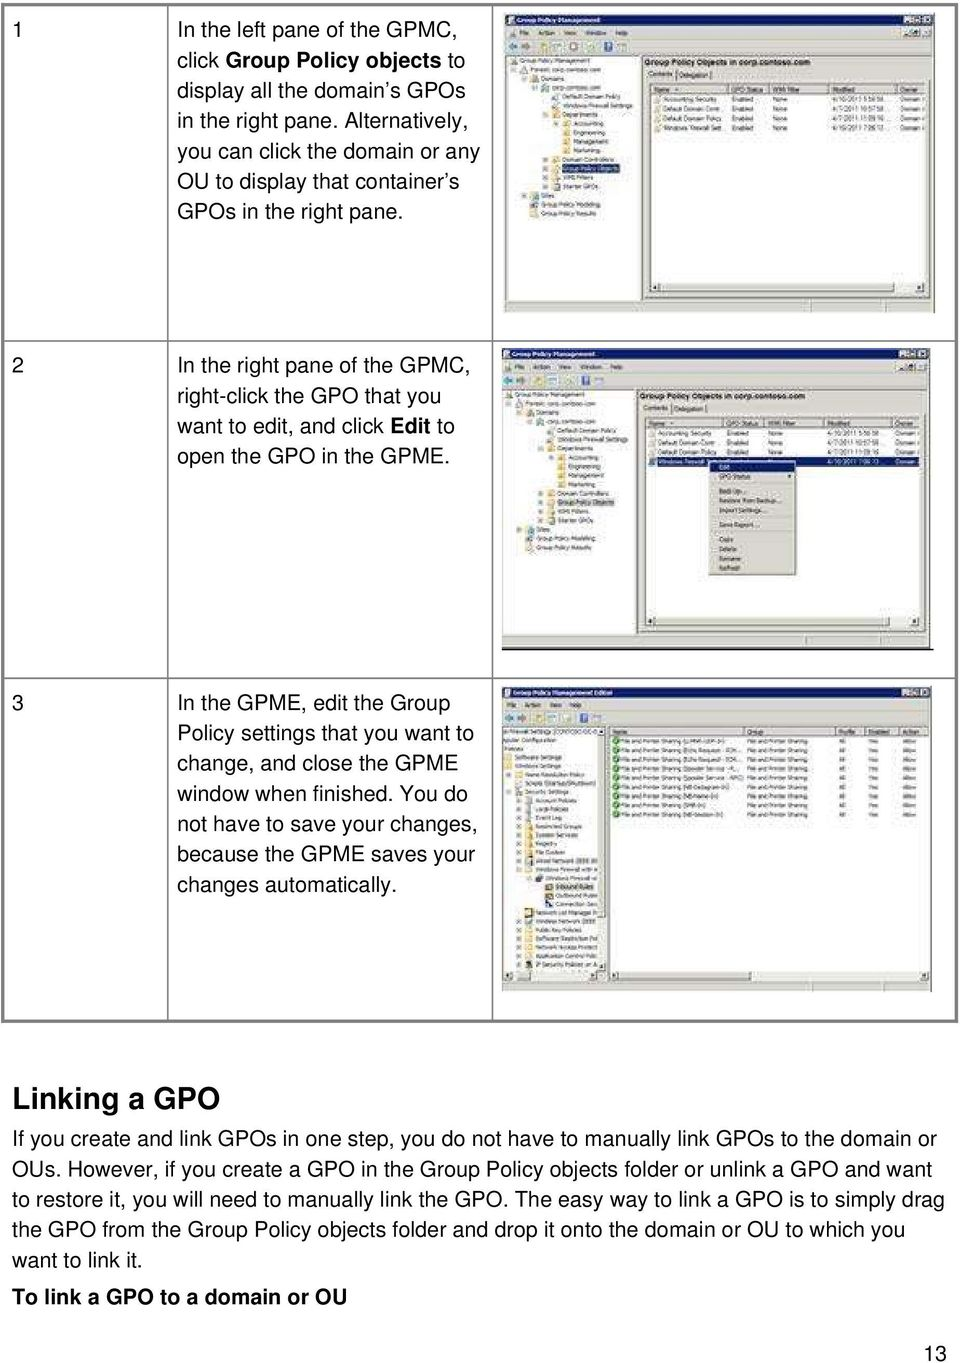 2 In the right pane of the GPMC, right-click the GPO that you want to edit, and click Edit to open the GPO in the GPME.